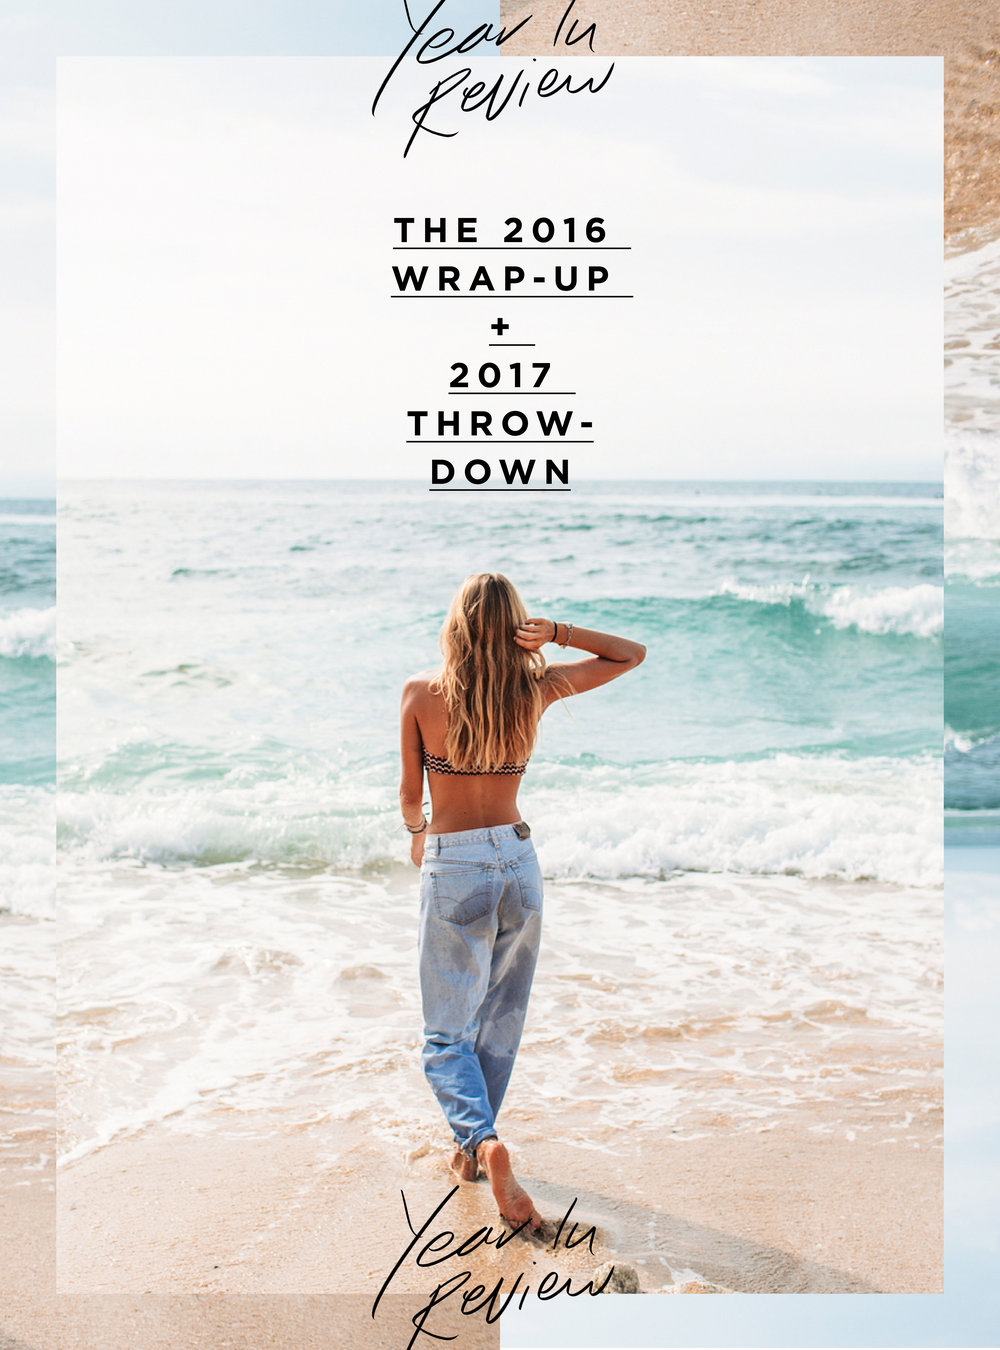 The 2016 Wrap-Up + 2017 Throw-Down | Year In Review | freshbysian.com